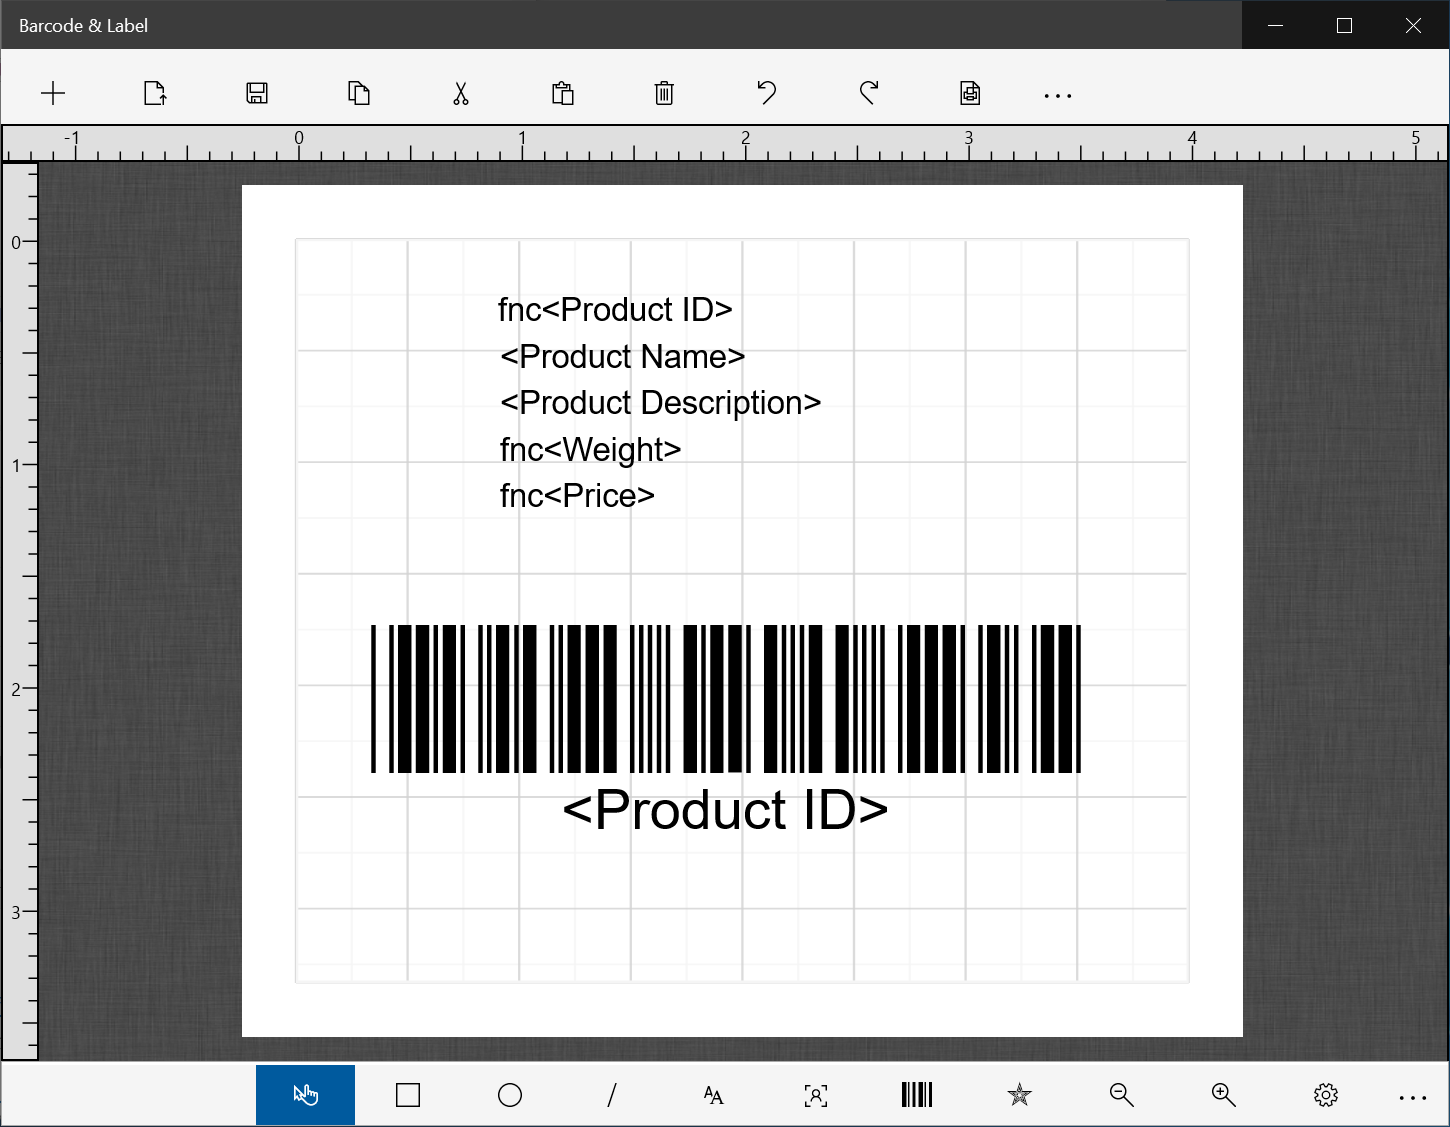 Barcode & Label - Windows Store App